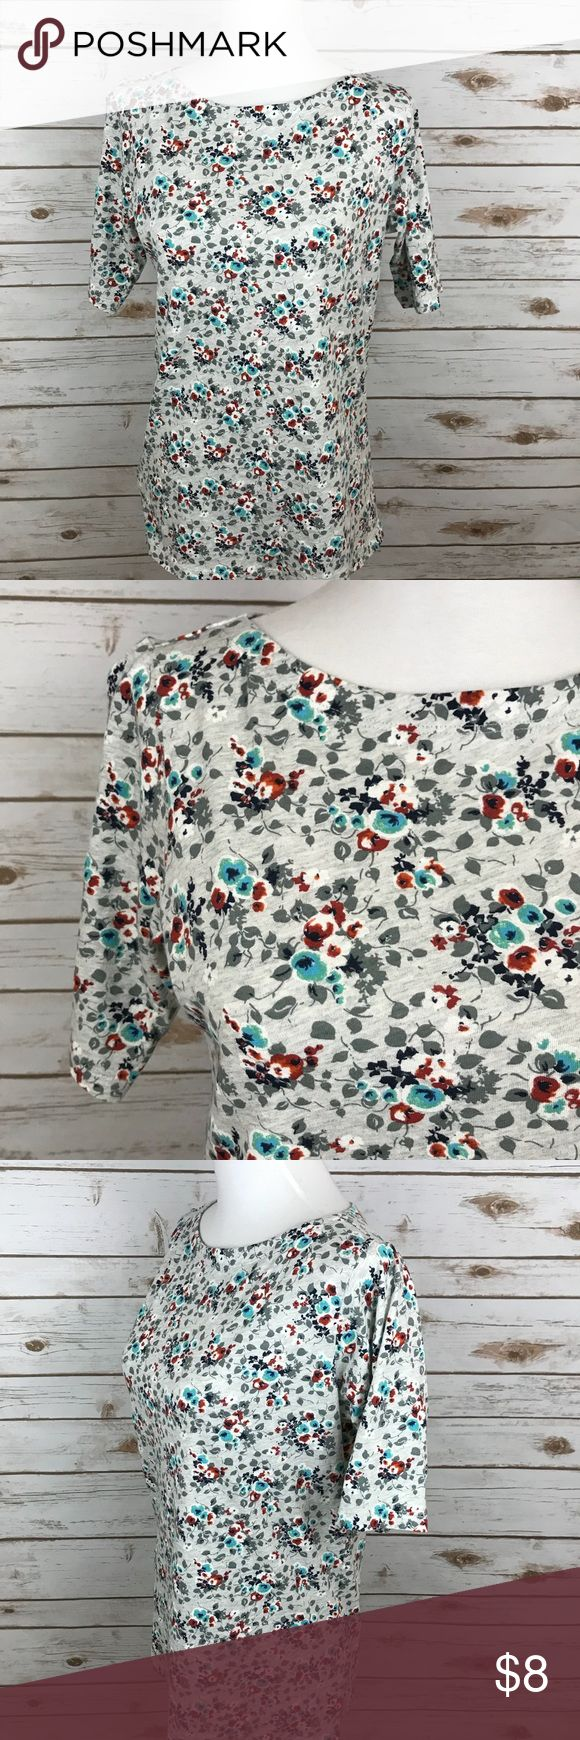 """Women's floral top Floral top Sleeve length: 10.5"""" at top  Length overall: 24.5""""   No rips or stains  Smoke free home   Pair with a fun bag !   Bundle and save   Always open to offers jcpenney Tops"""